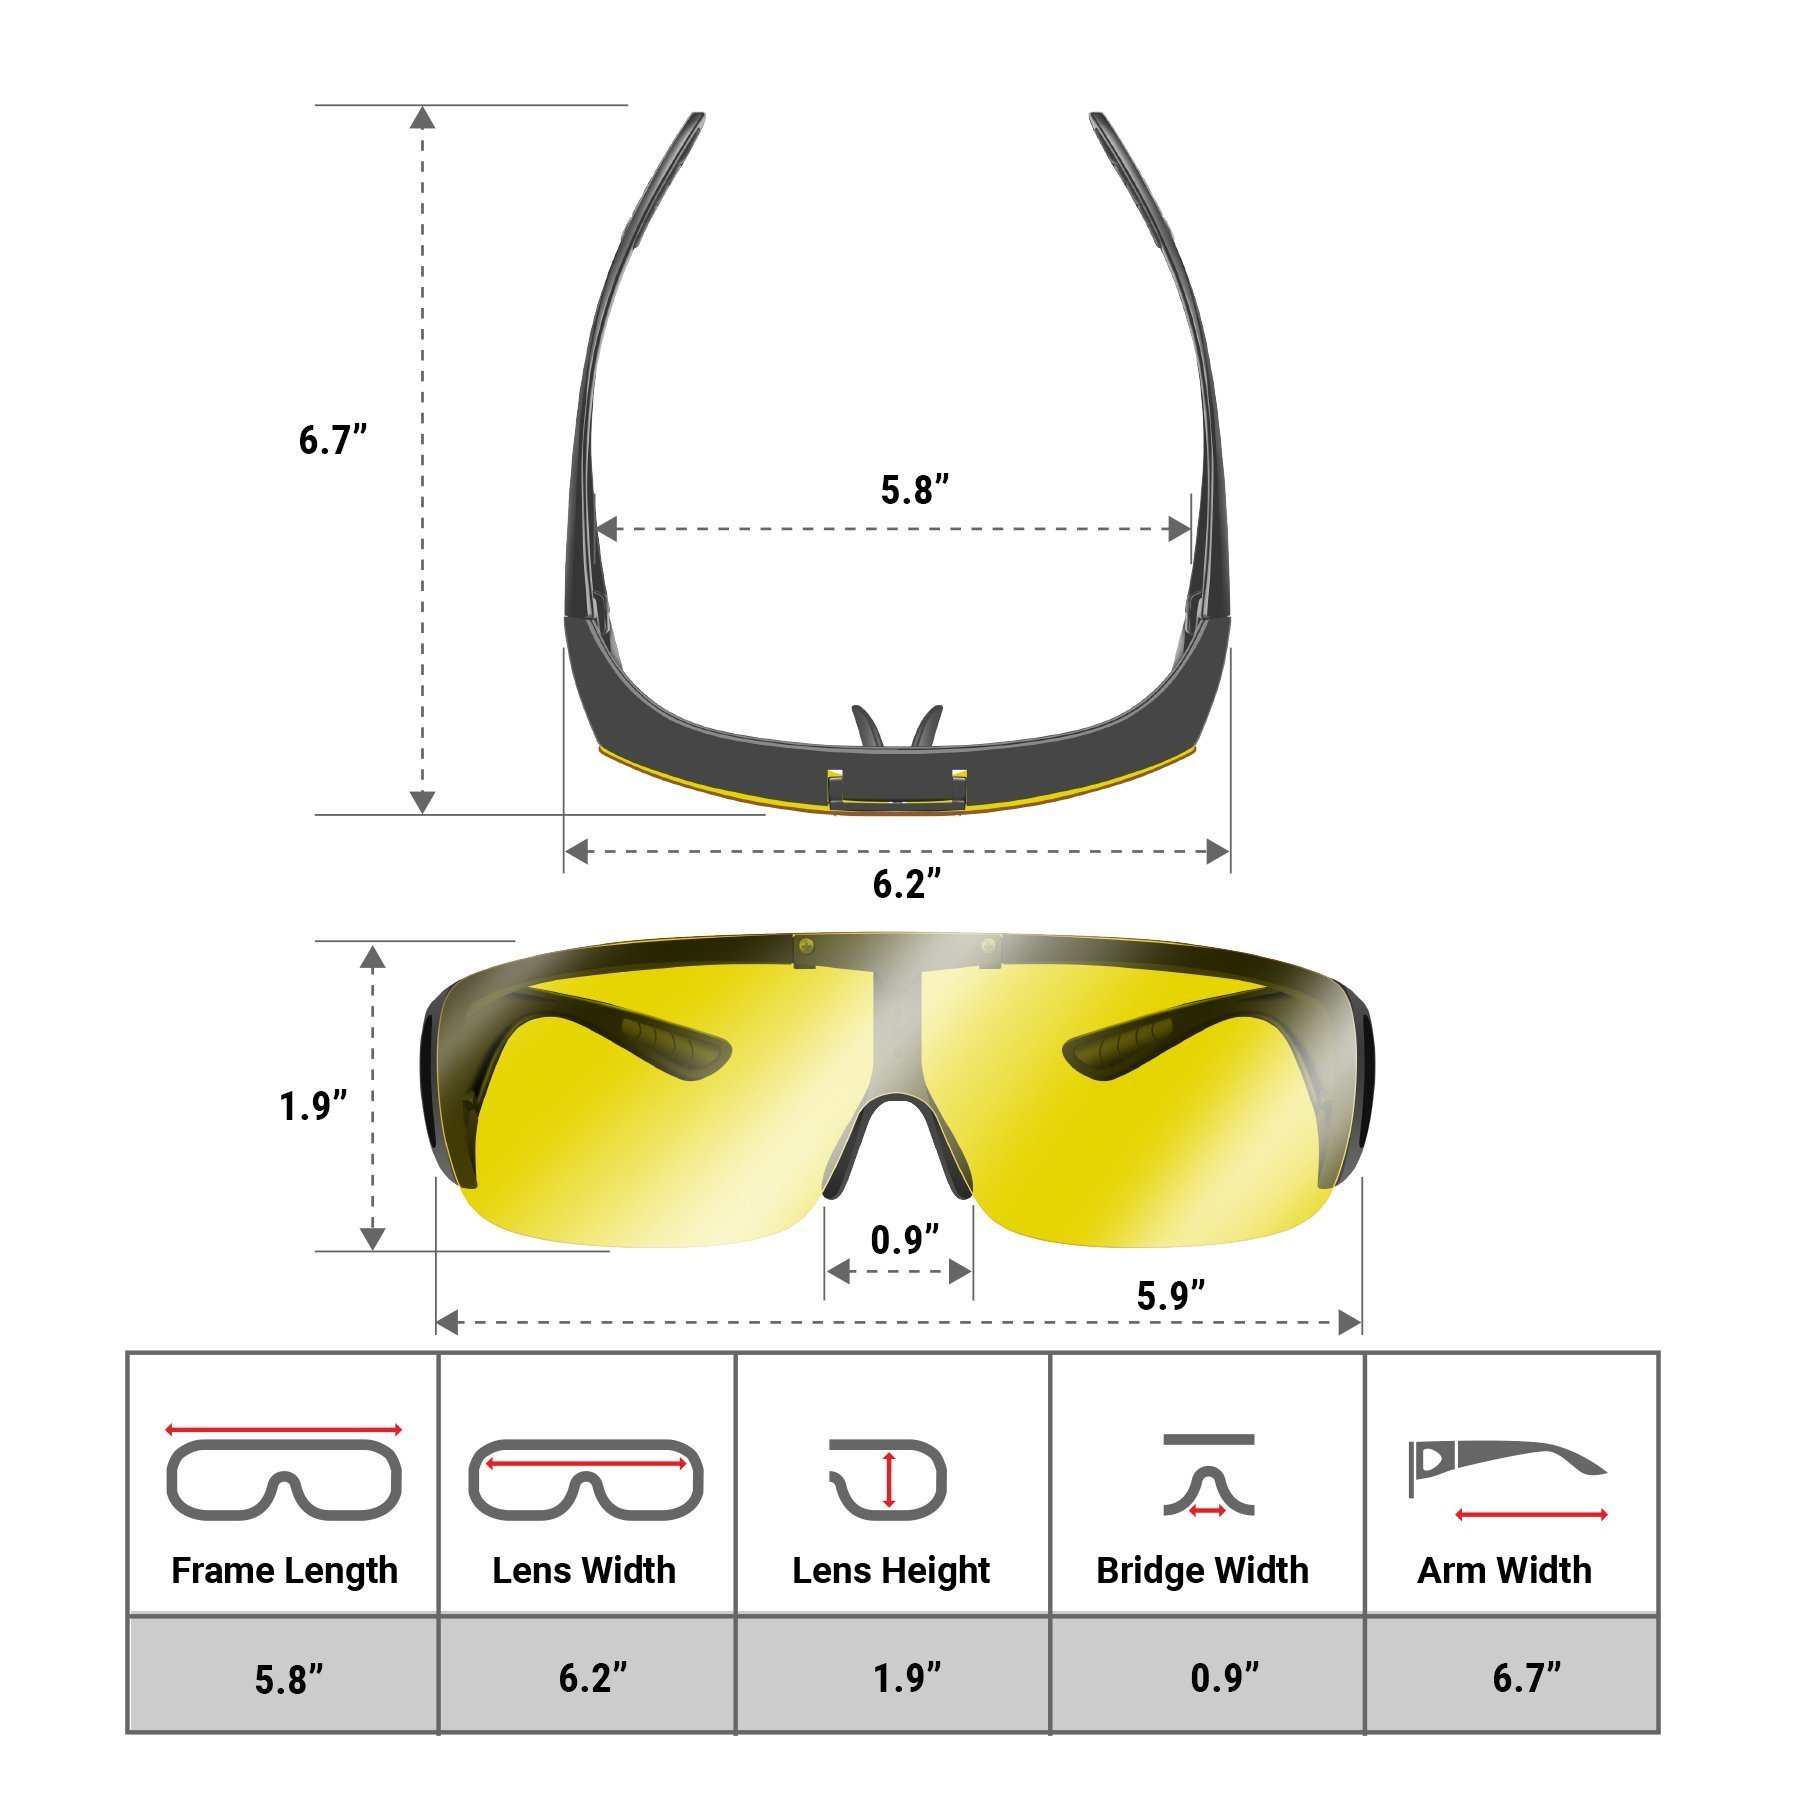 Day and Night Driving Glasses - Specifications